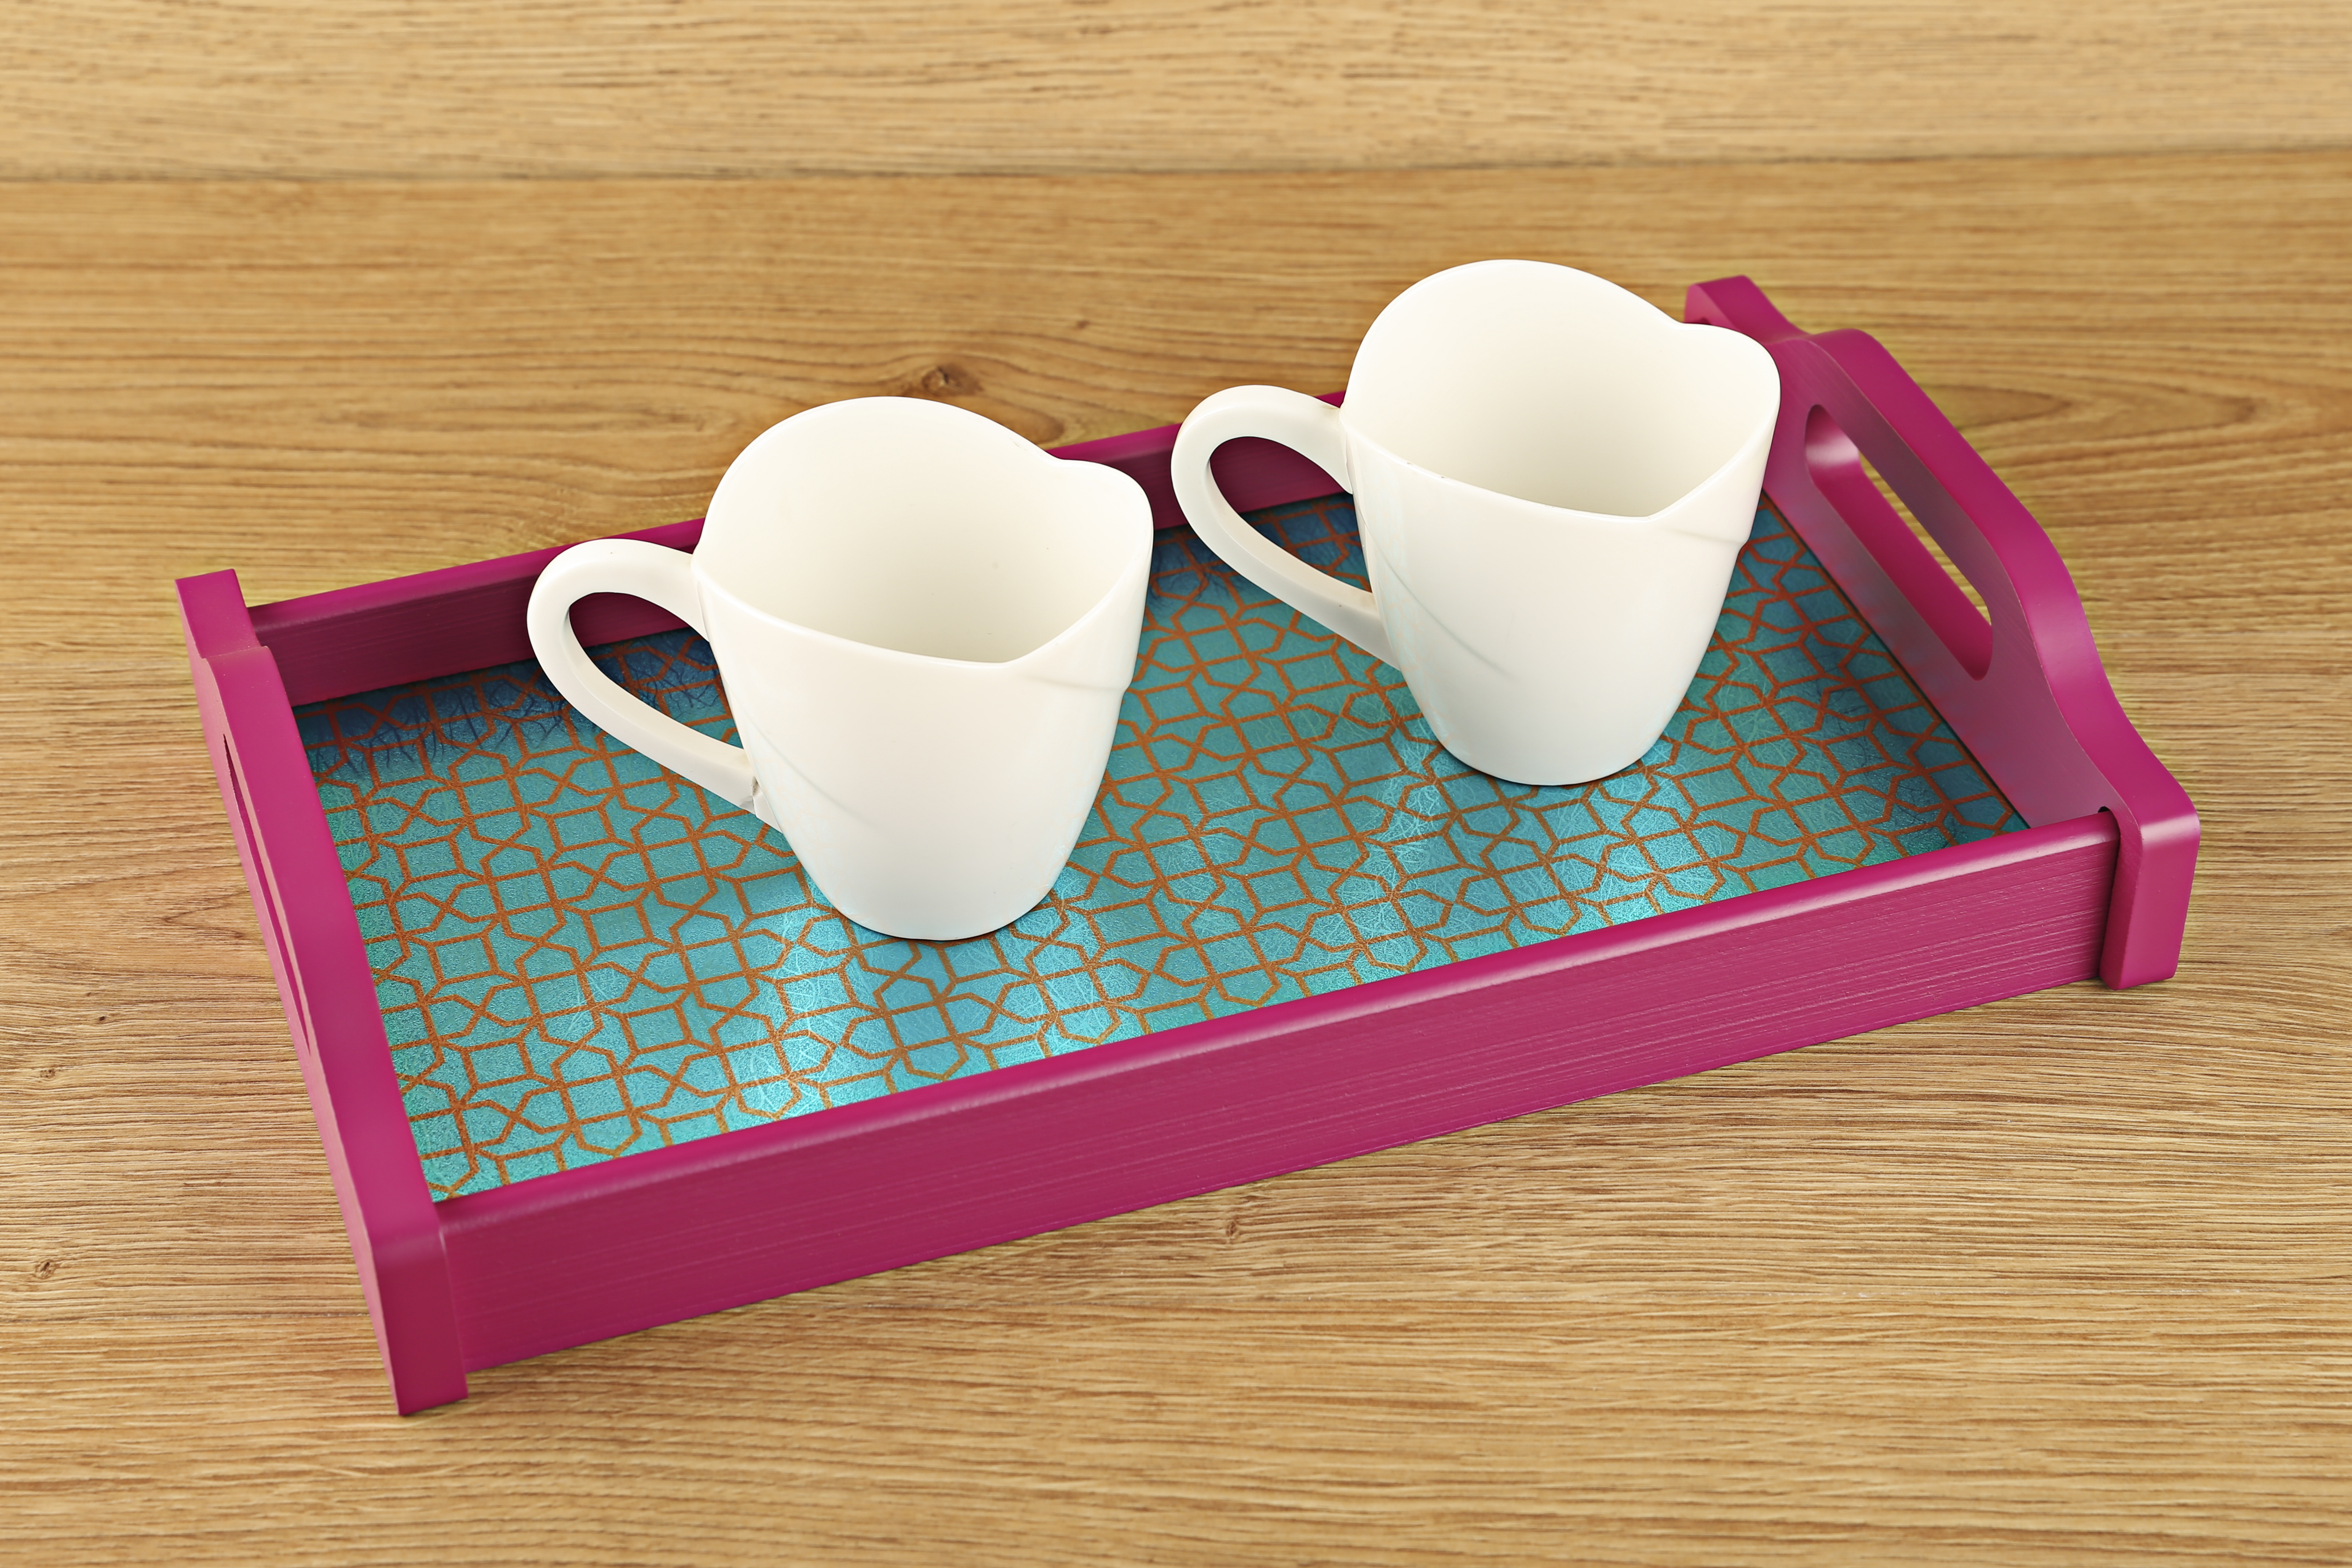 LE Elephant & Horses Small Tray Timber Wood Trays in Teal And Pink Colour by Living Essence